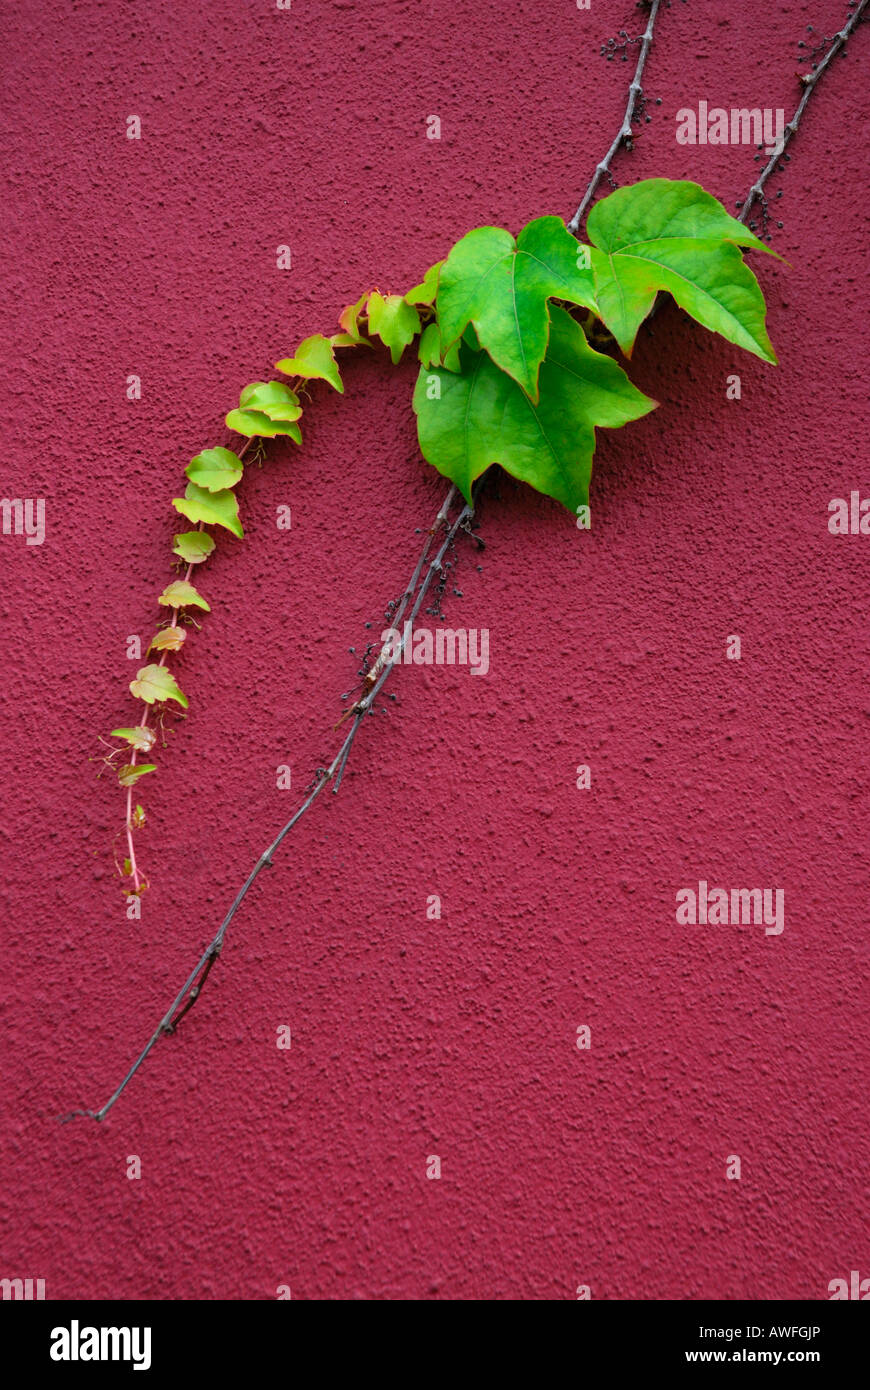 Boston - or Japanese Ivy (Parthenocissus tricuspidata) tendril growing on a house wall Stock Photo